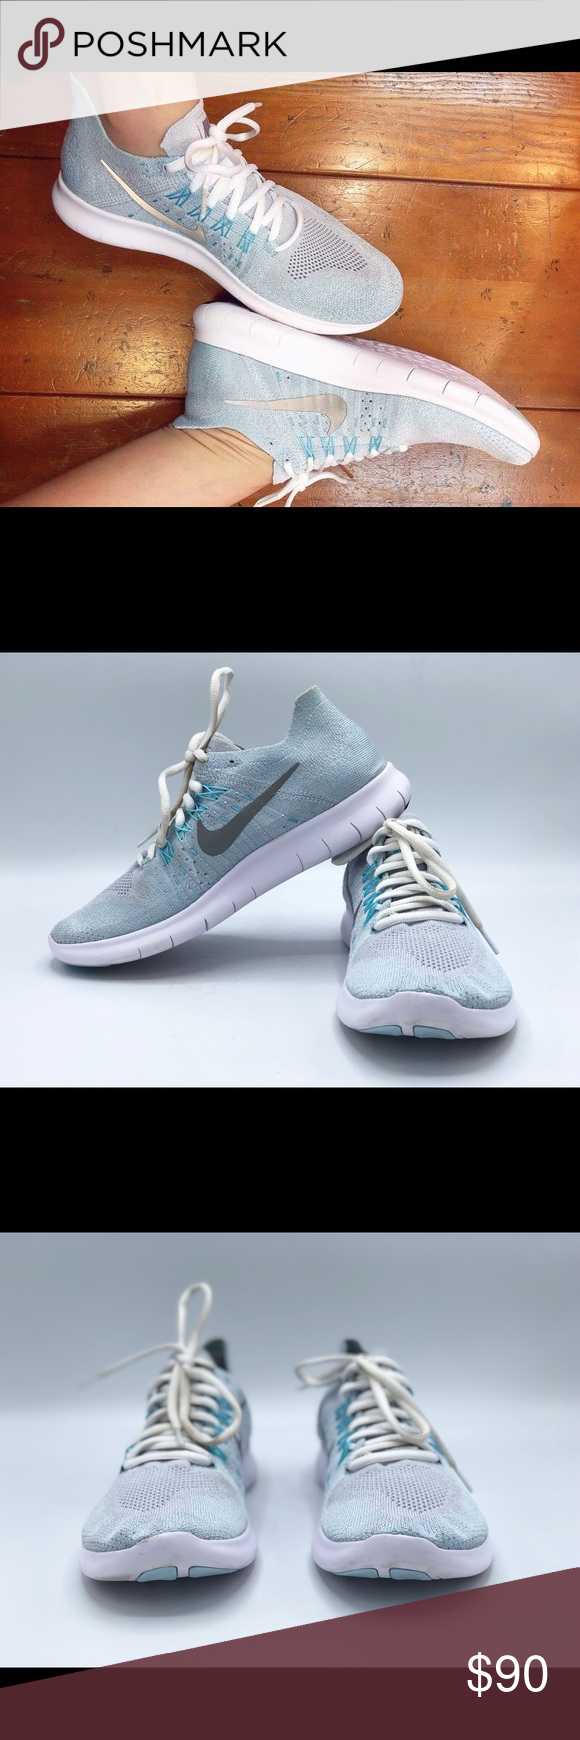 63f093f1656f0 Nike Women s Free RN Flyknit 2017 Shoes These are in very good condition  Nike Women s Free